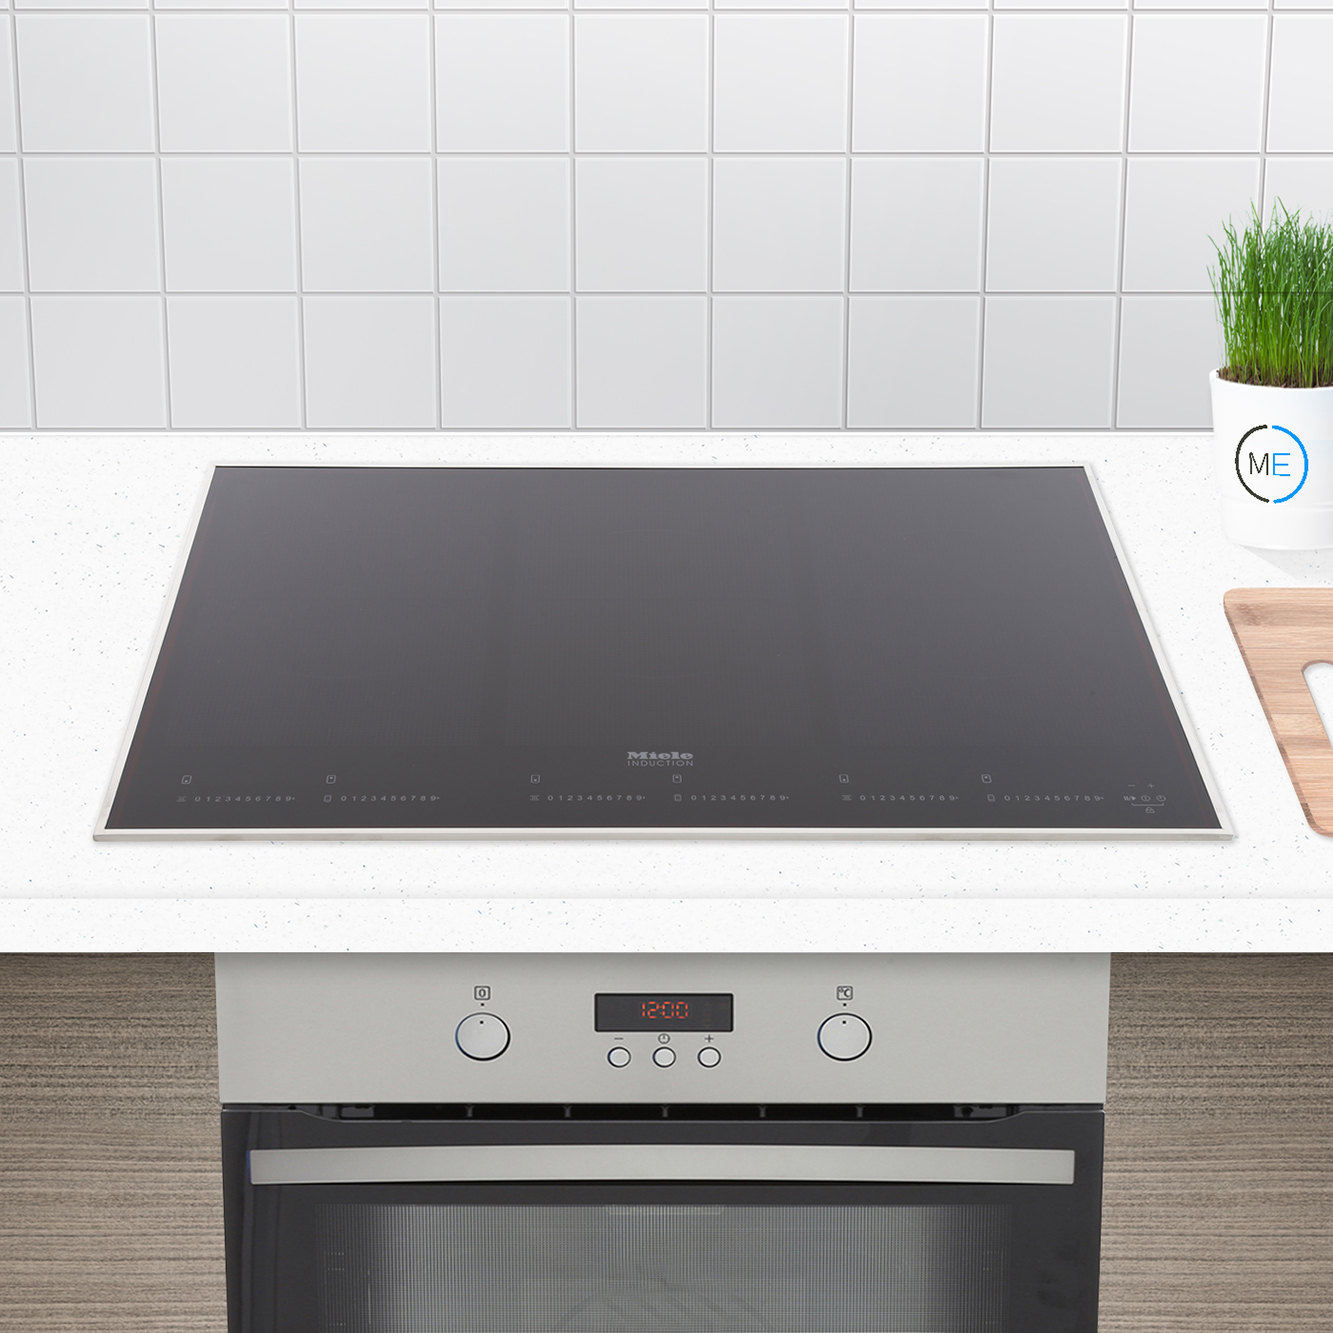 buy miele km6366 1 induction hob raised stainless steel trim marks electrical. Black Bedroom Furniture Sets. Home Design Ideas